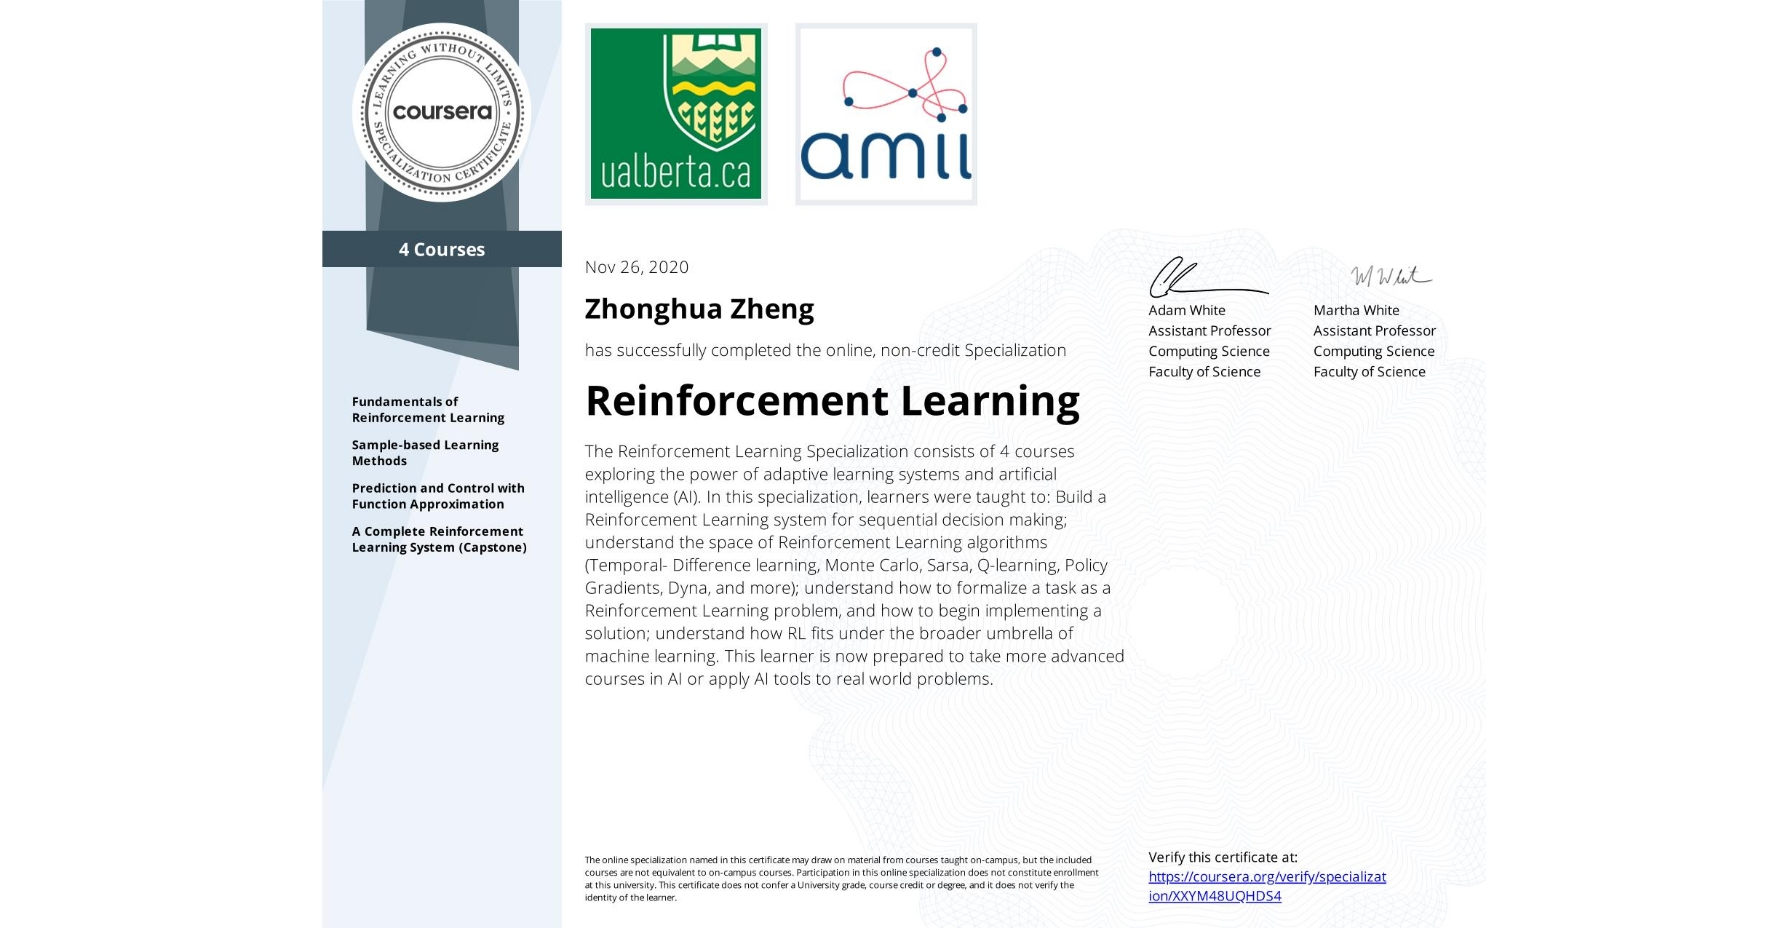 View certificate for Zhonghua Zheng, Reinforcement Learning, offered through Coursera. The Reinforcement Learning Specialization consists of 4 courses exploring the power of adaptive learning systems and artificial intelligence (AI).  In this specialization, learners were taught to:  Build a Reinforcement Learning system for sequential decision making; understand the space of Reinforcement Learning algorithms (Temporal- Difference learning, Monte Carlo, Sarsa, Q-learning, Policy Gradients, Dyna, and more); understand how to formalize a task as a Reinforcement Learning problem, and how to begin implementing a solution; understand how RL fits under the broader umbrella of machine learning.  This learner is now prepared to take more advanced courses in AI or apply AI tools to real world problems.